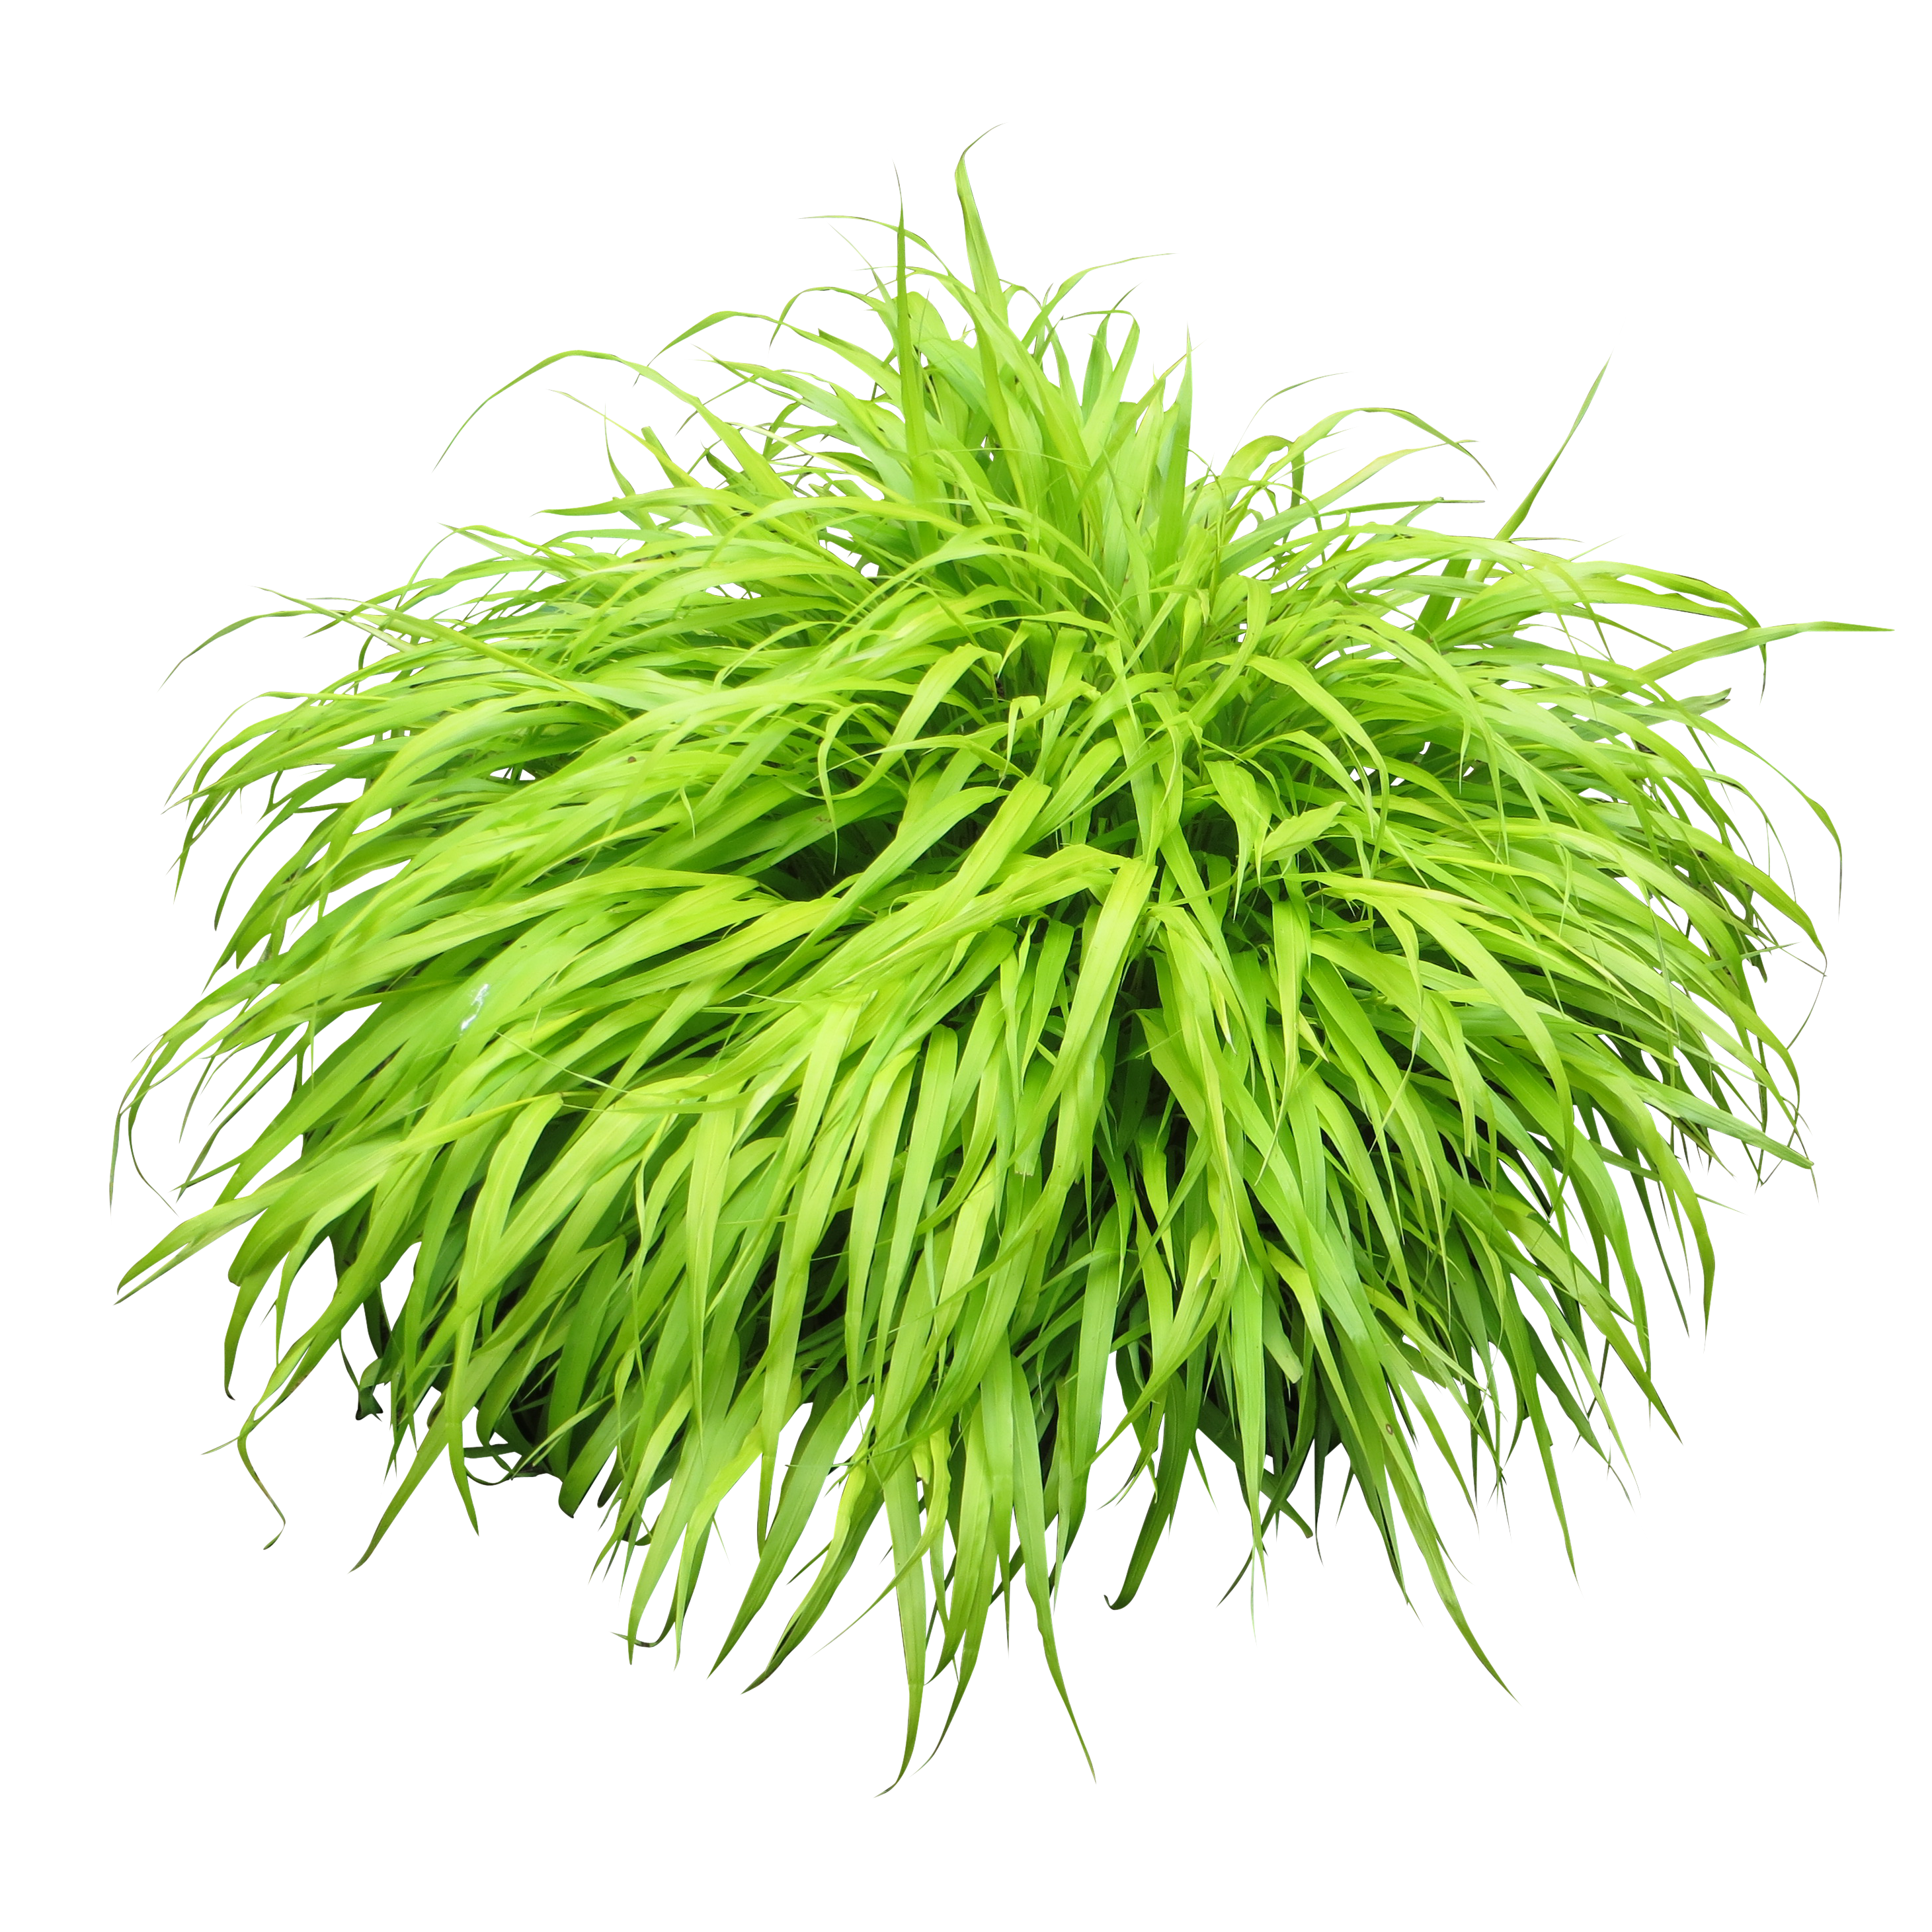 Clipart grass shrub. Bushes png images free